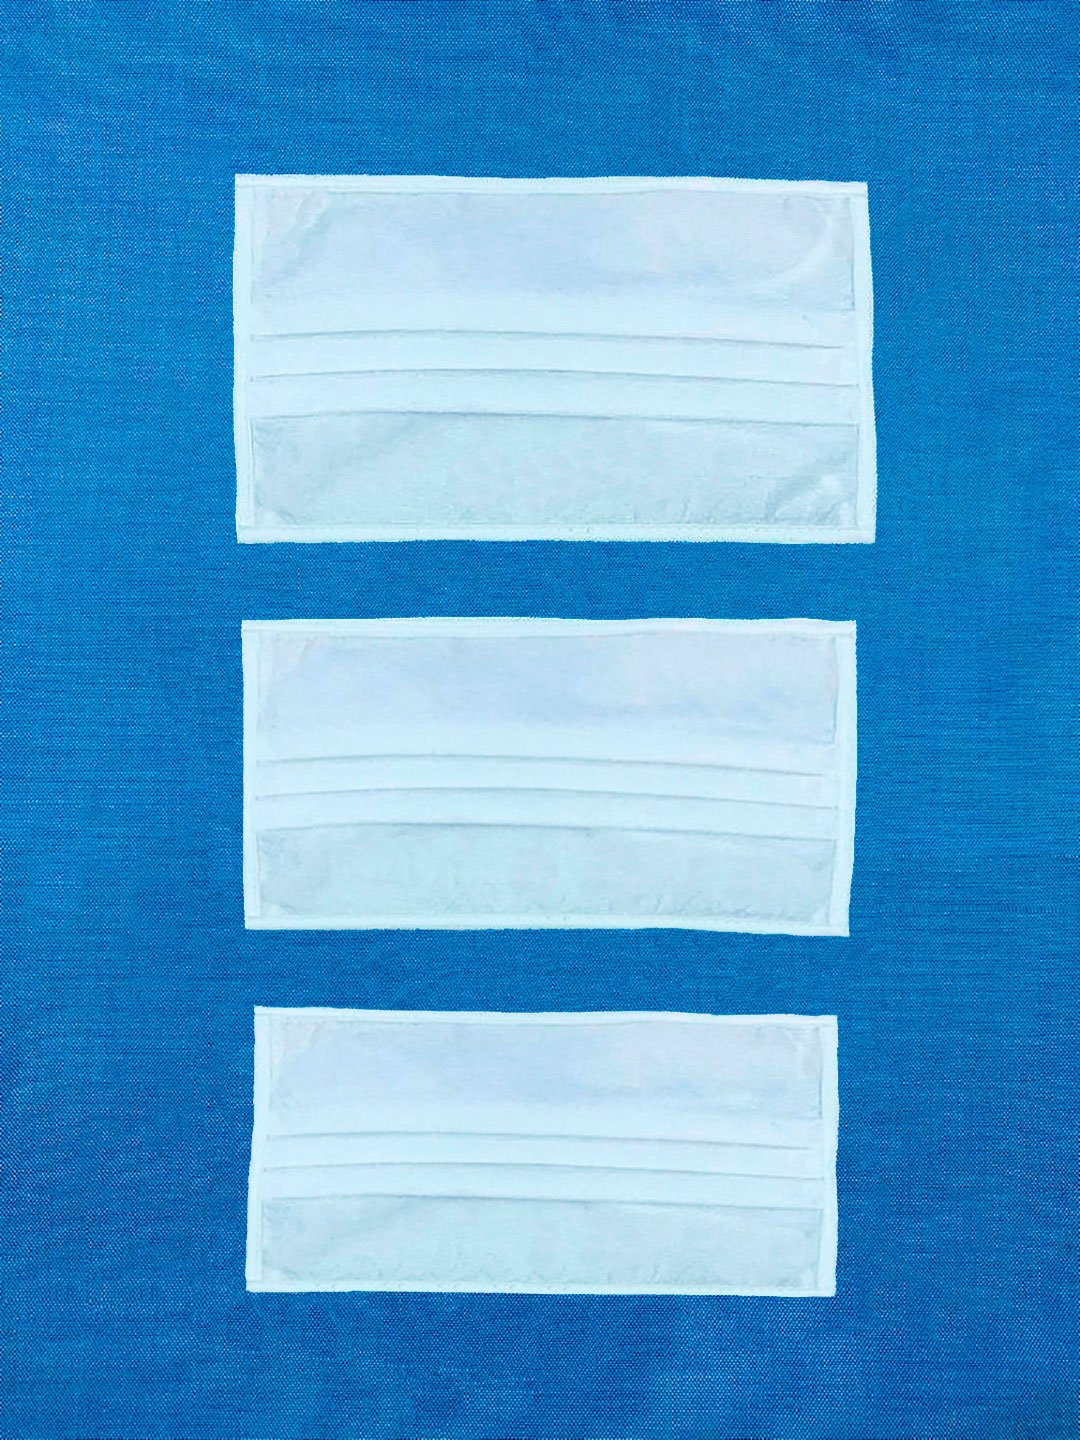 Non-Woven High Filtration Pleated Face Mask - White with White Binding Edges. Large, Medium, Small Sizes.